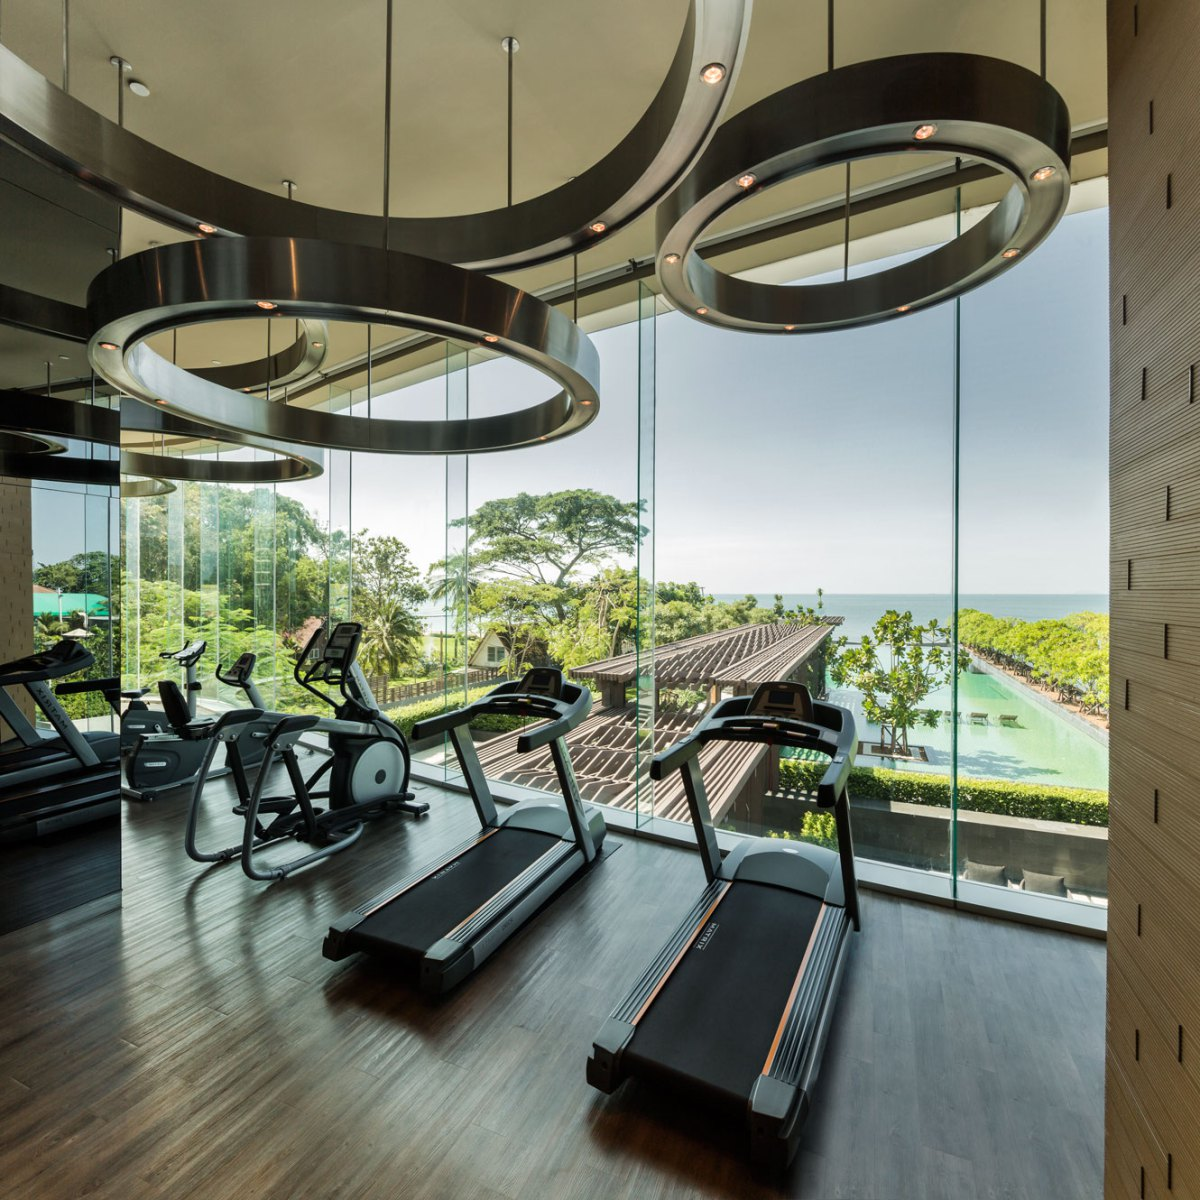 Private gym design interior design ideas for Architecture and interior design